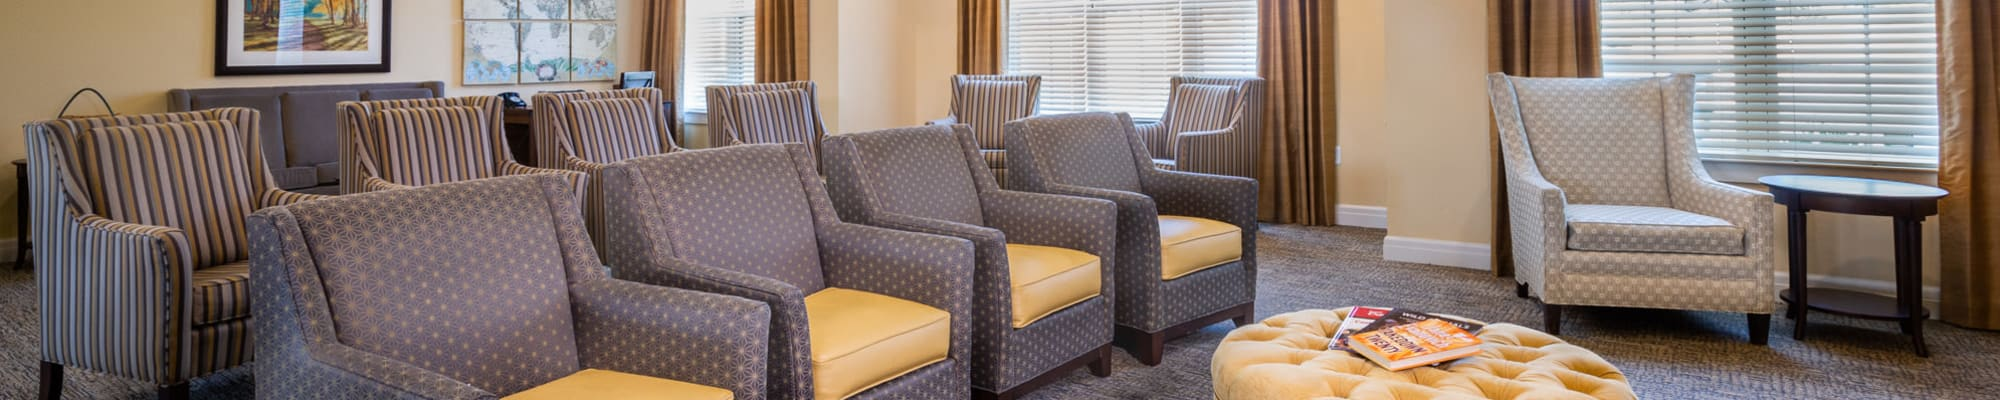 Family Resources at Harmony at Five Forks in Simpsonville, South Carolina